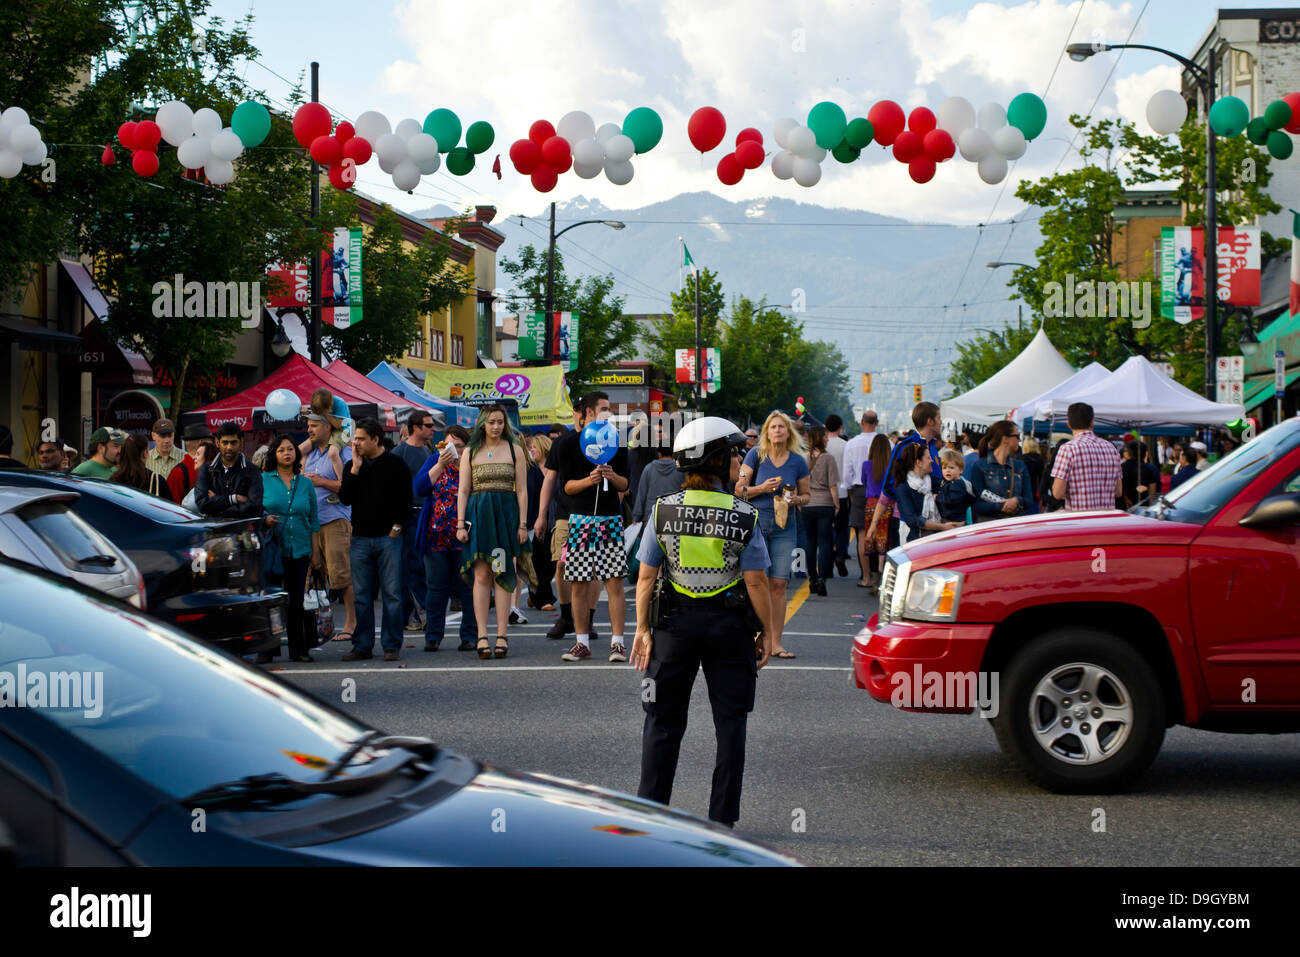 A traffic officer controls busy traffic while the crowd waits to cross the street at Italian Day street festival - Stock Image